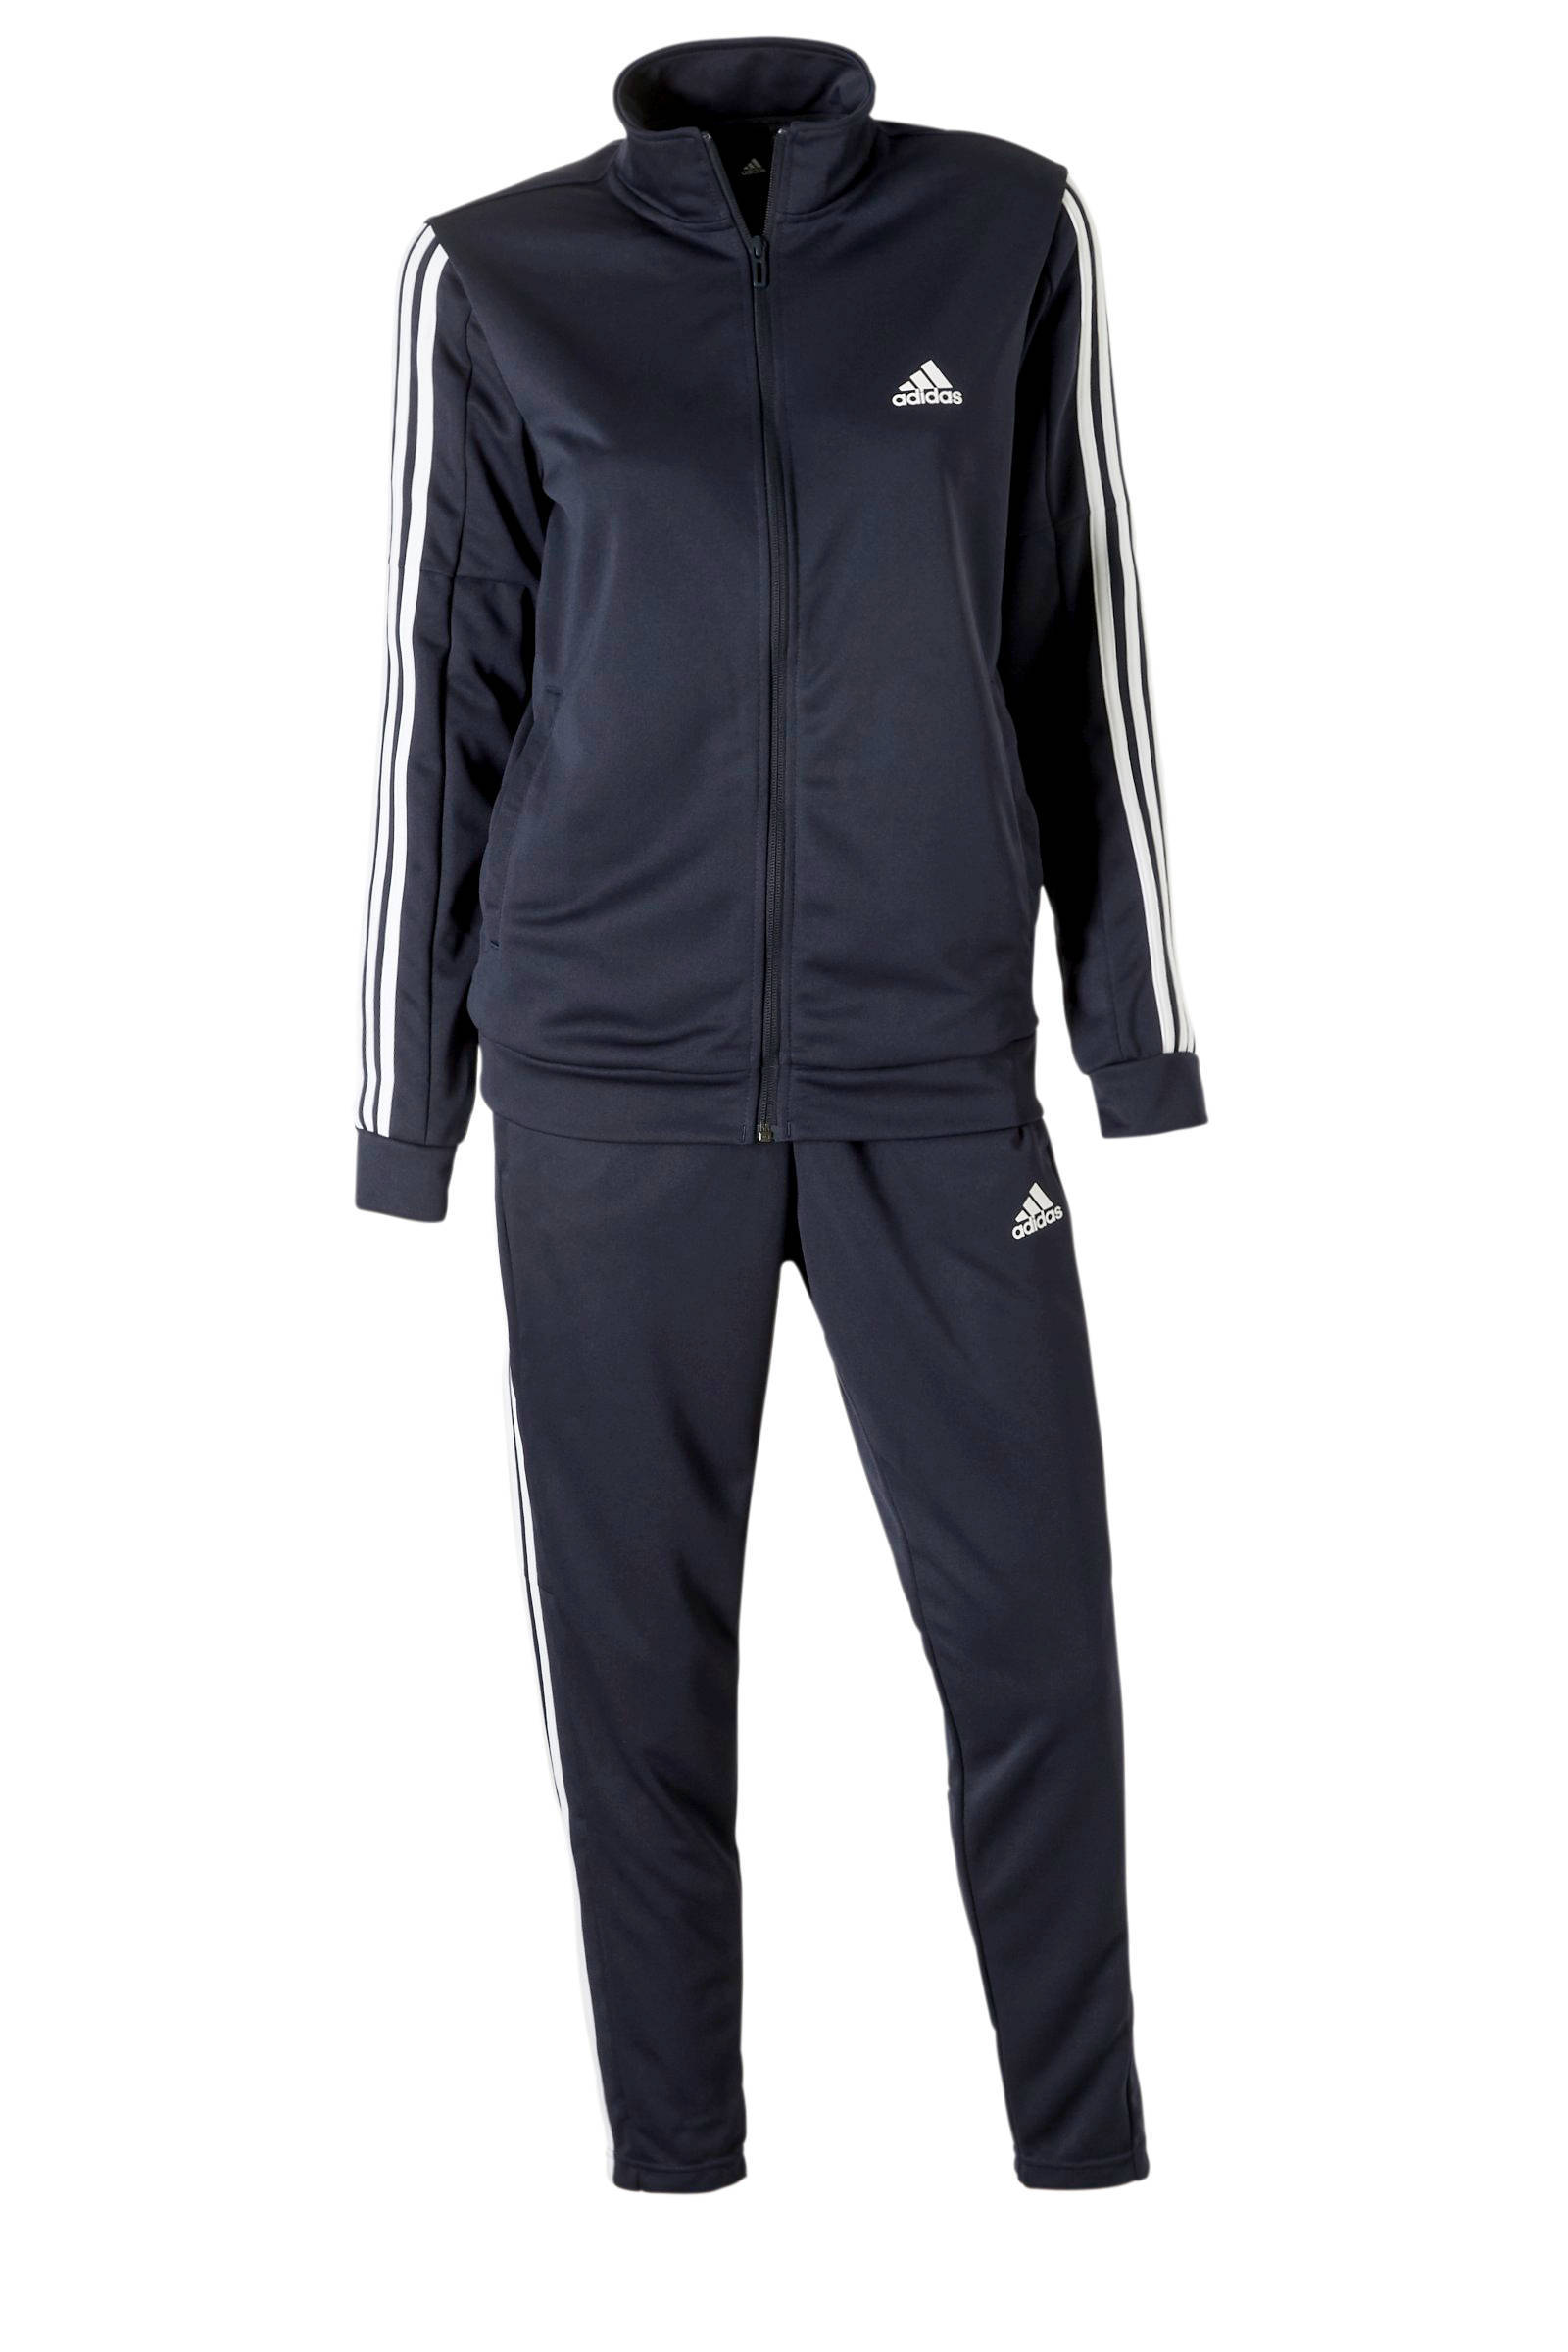 adidas Performance trainingspak rozeblauw | wehkamp